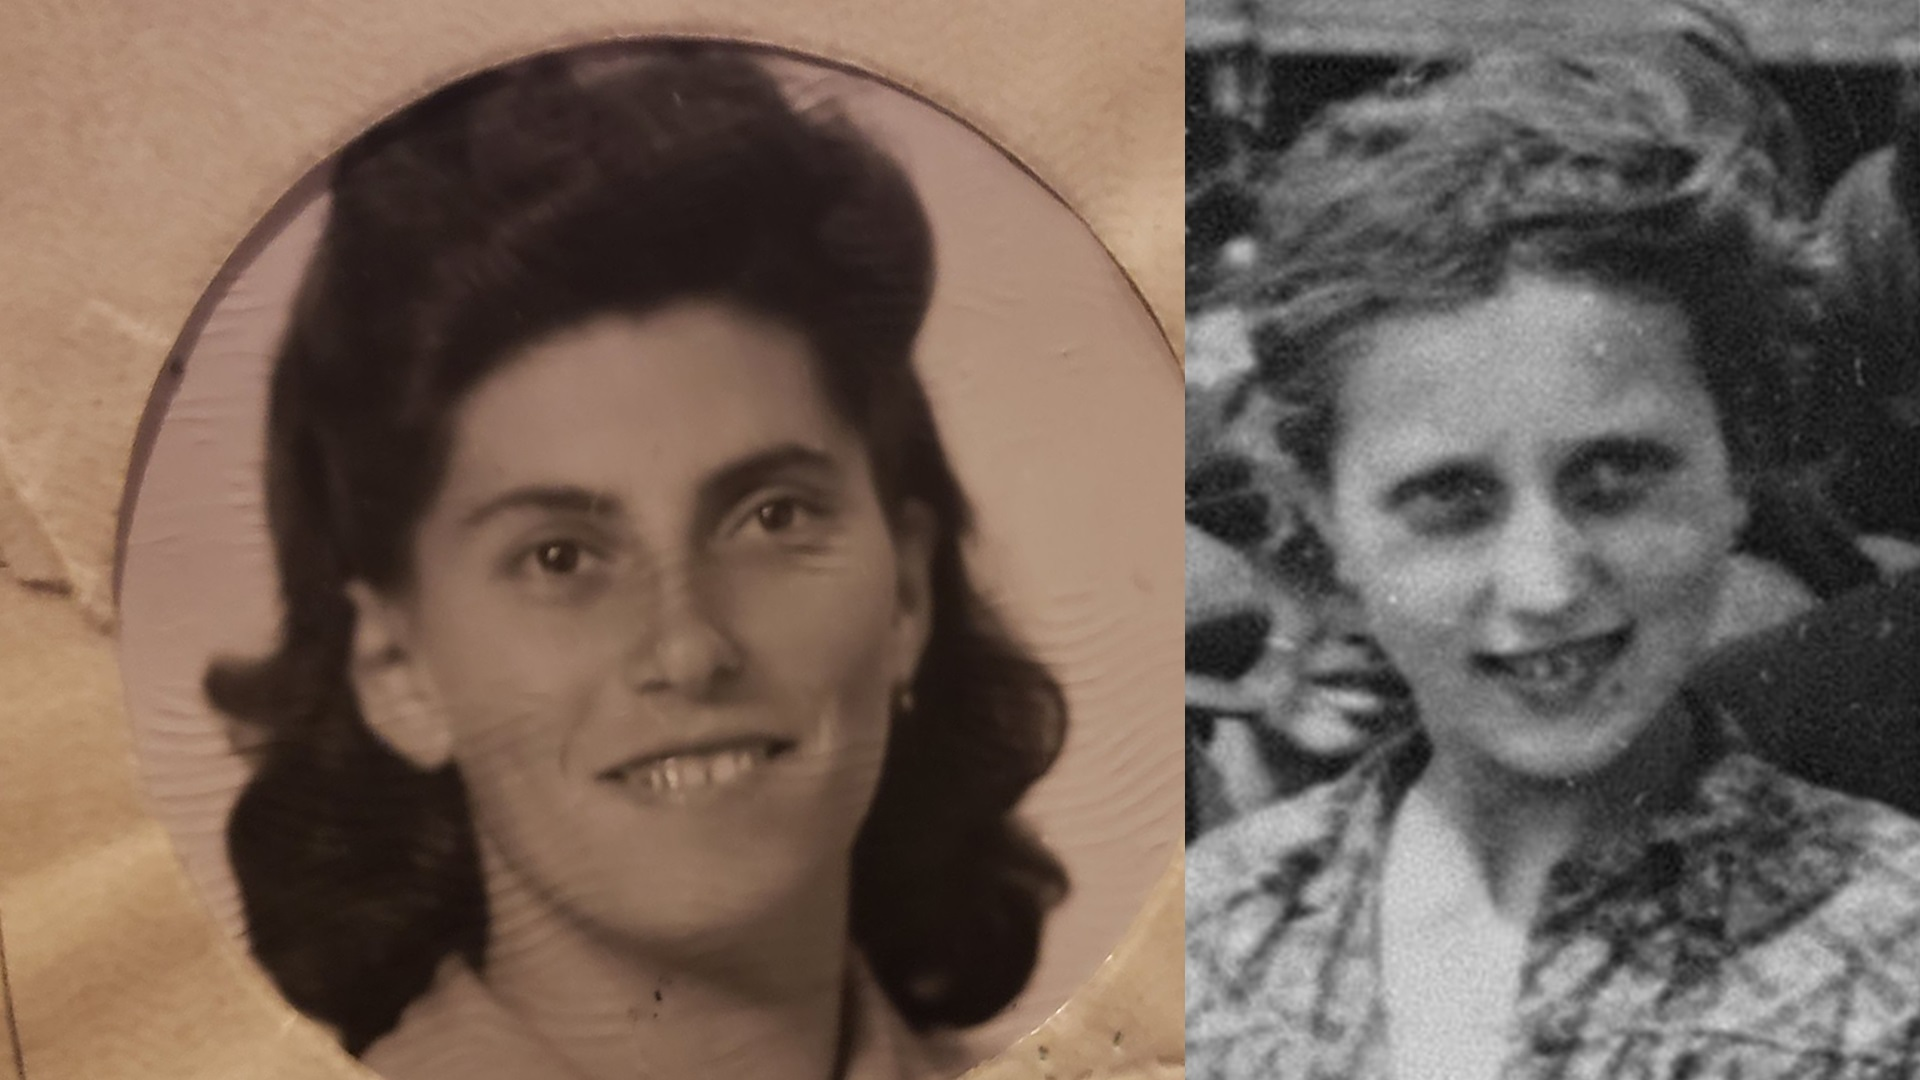 Bella (Baila) Solomon after the war (left) and in 'The Auschwitz Album,' May 1944